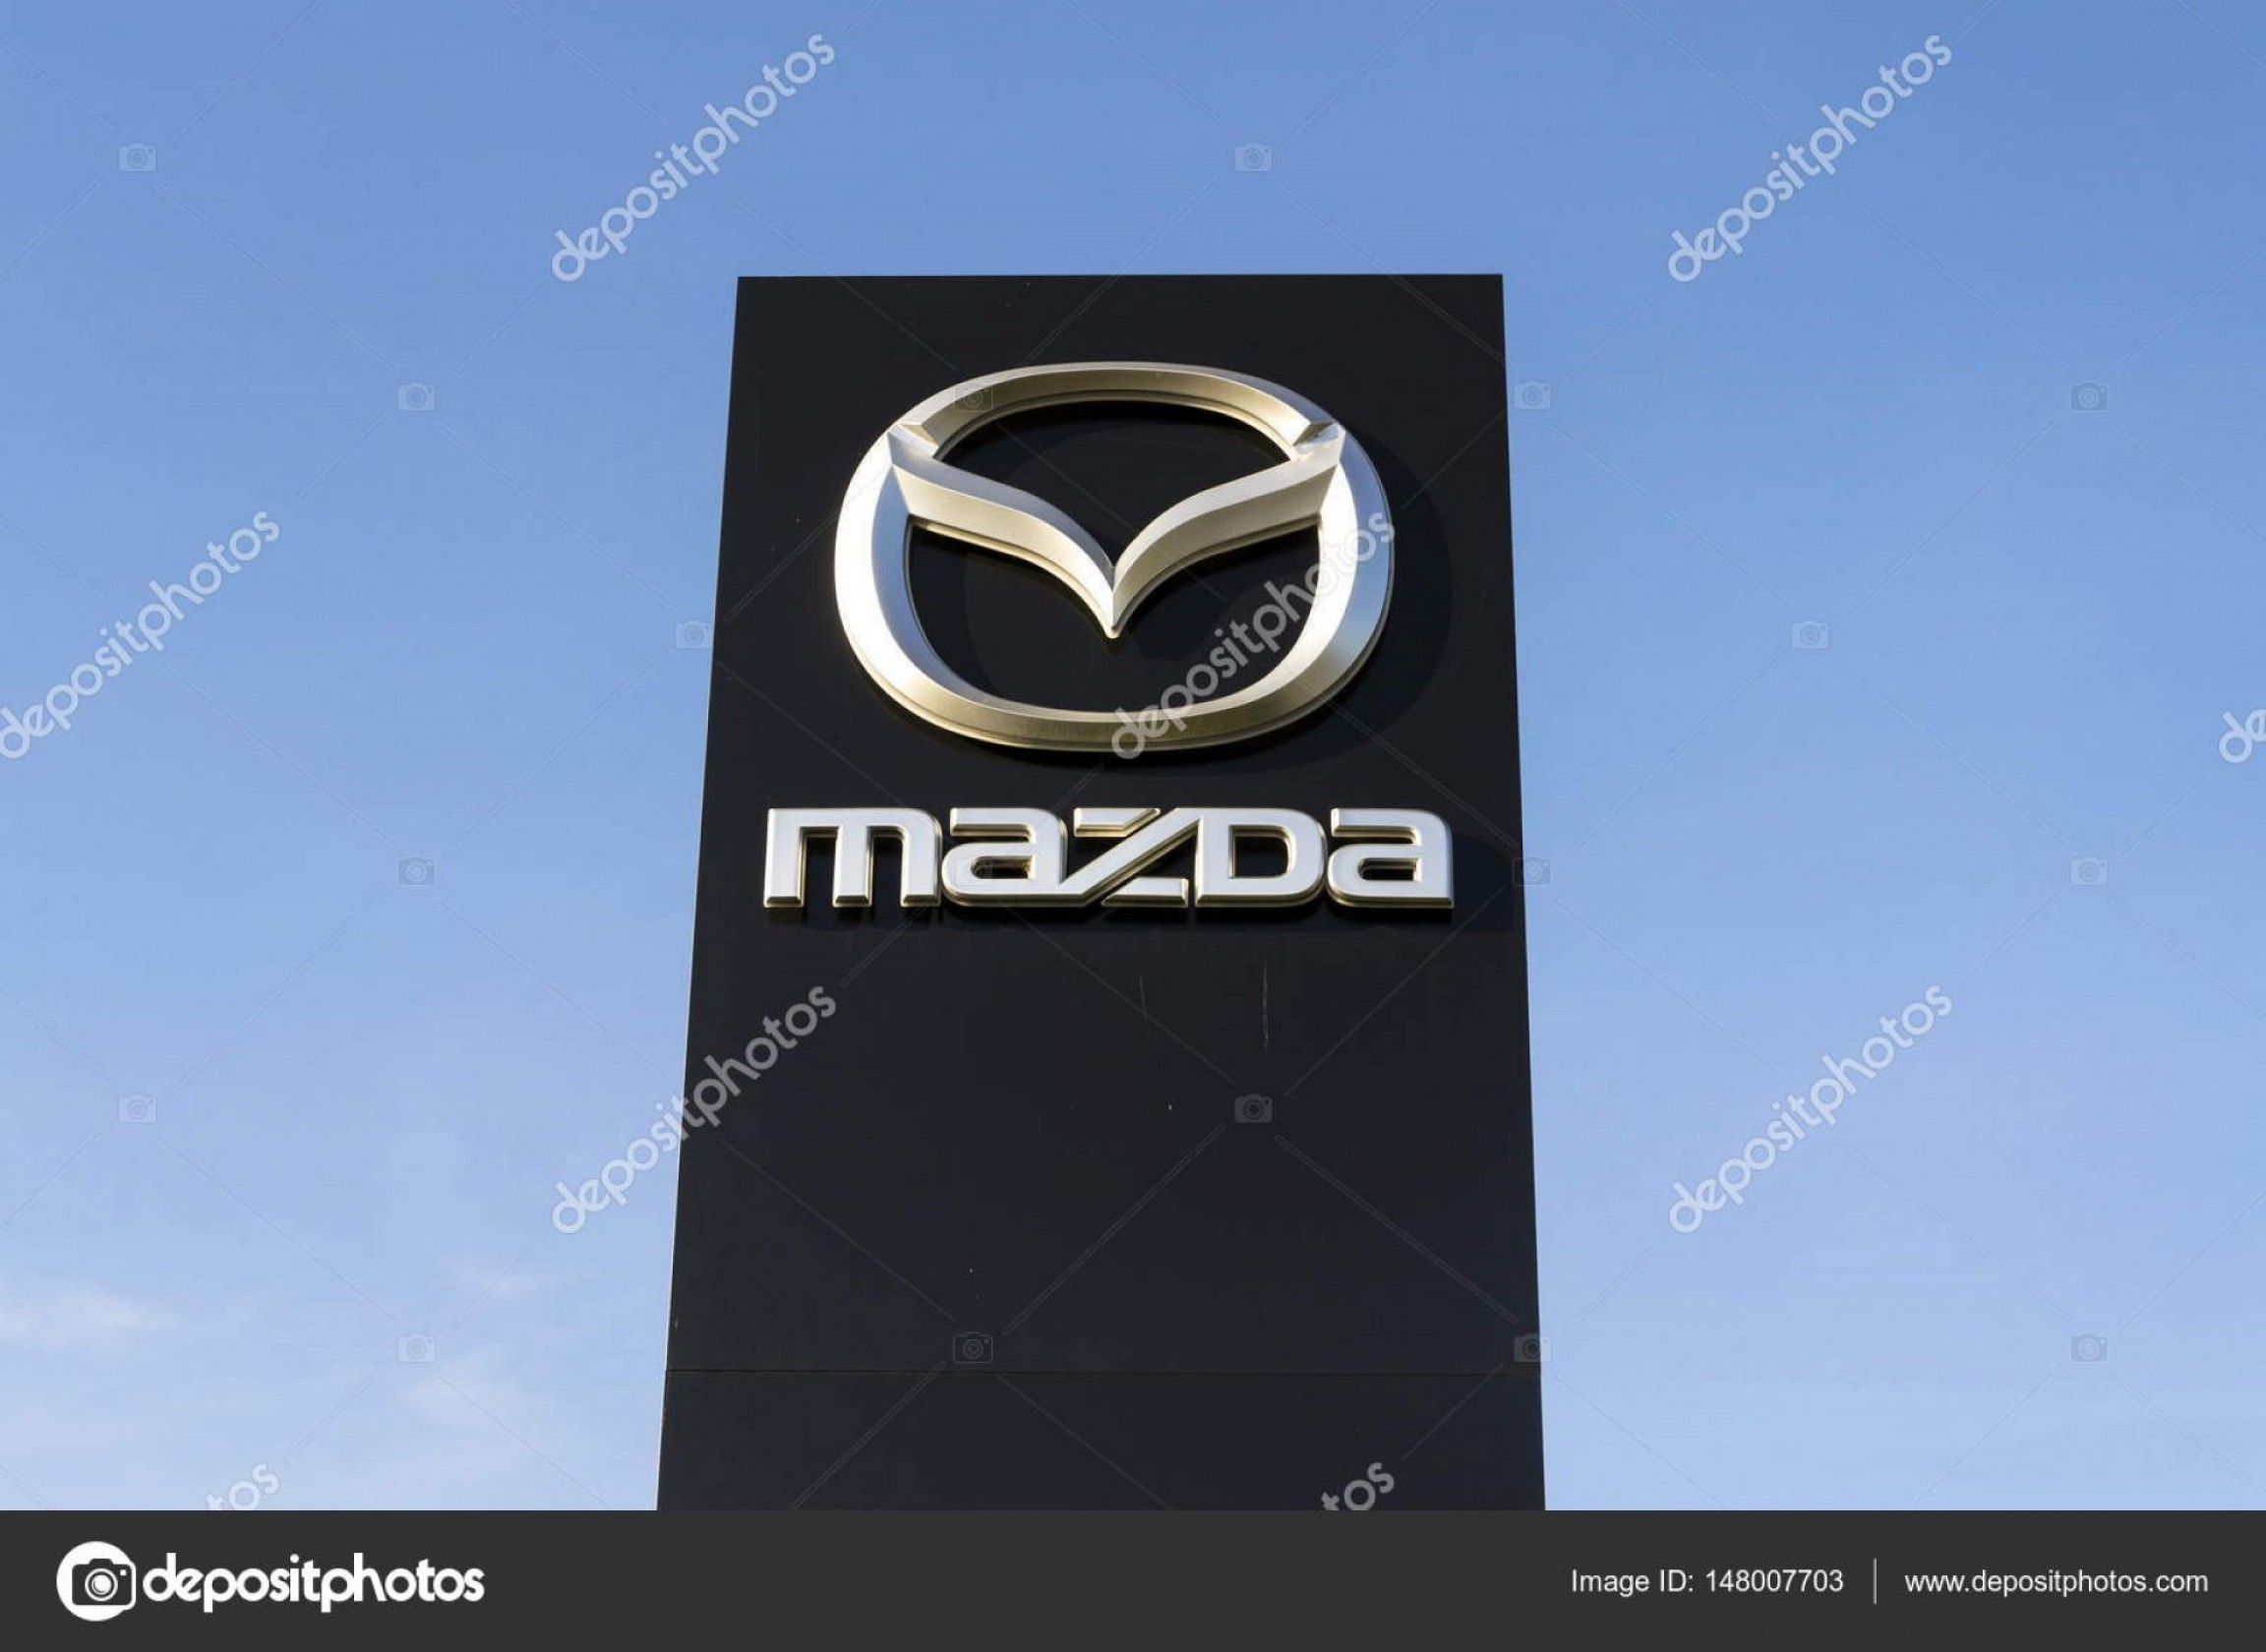 Mazda Logo Vector: Stock Photo Mazda Car Company Logo In